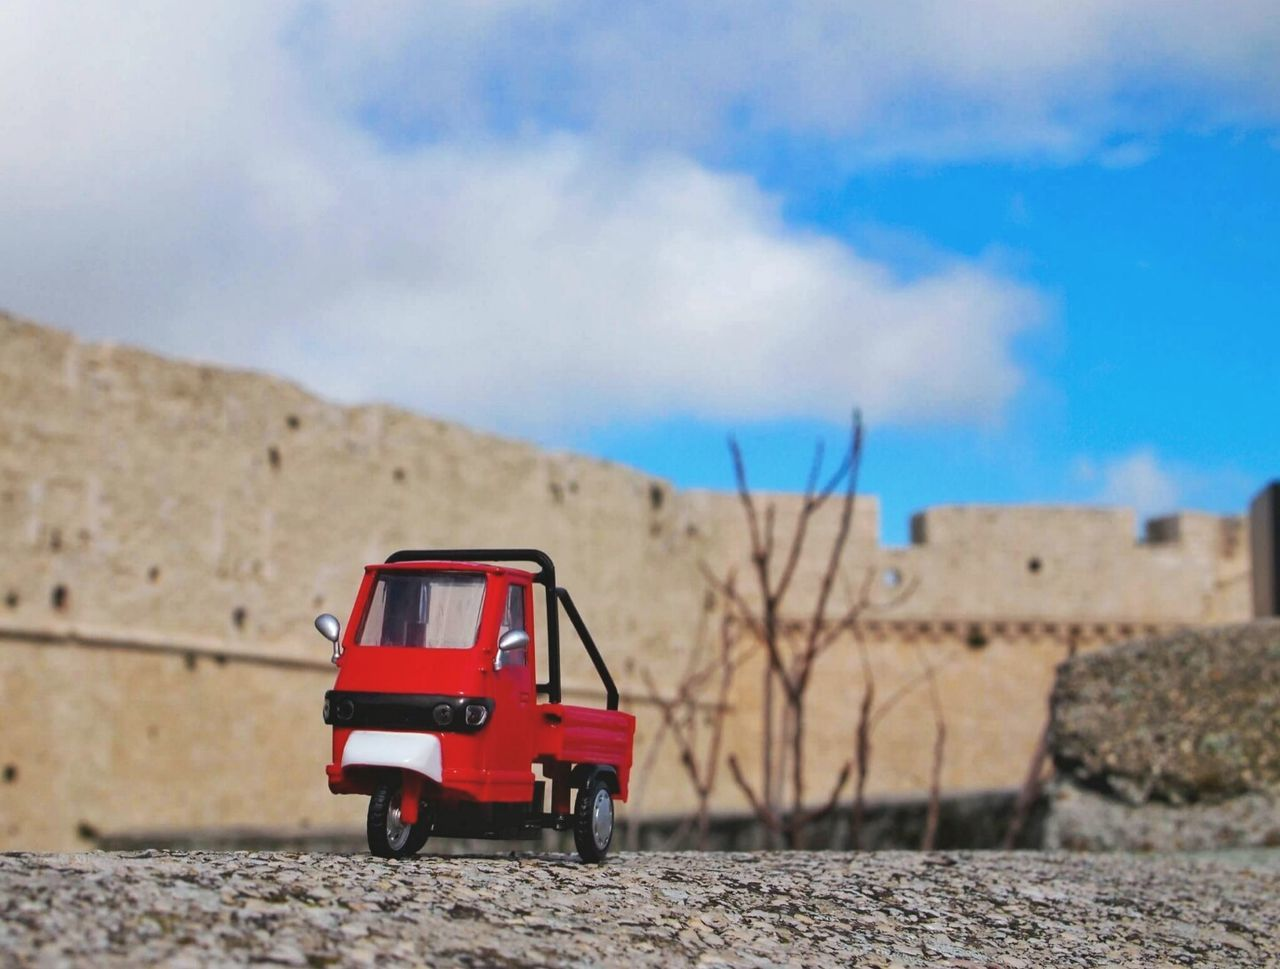 Transportation Focus On Foreground Arid Climate Nature No People Outdoors Sky Day En Route Miniatures Close-up Carry Carry On Deliver Delivery Truck Toy Lieblingsteil